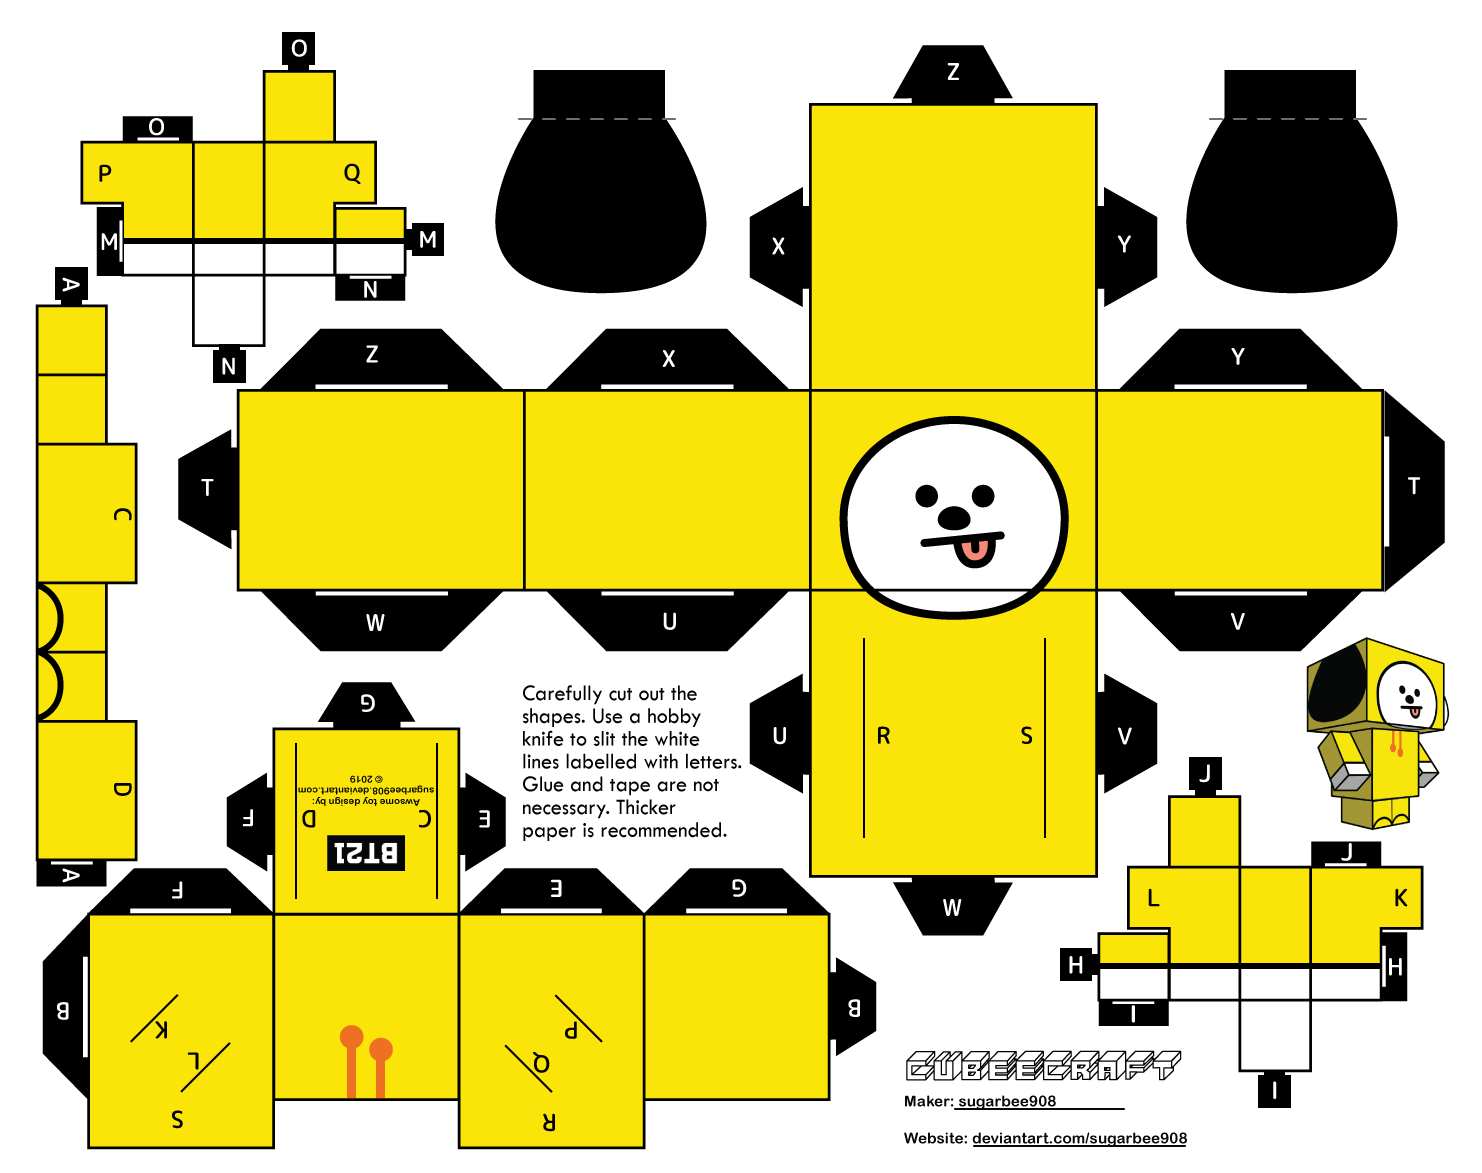 Chimmy Bt21 Cubeecraft By Sugarbee908 On Deviantart Stream tracks and playlists from chimmy on your desktop or mobile device. chimmy bt21 cubeecraft by sugarbee908